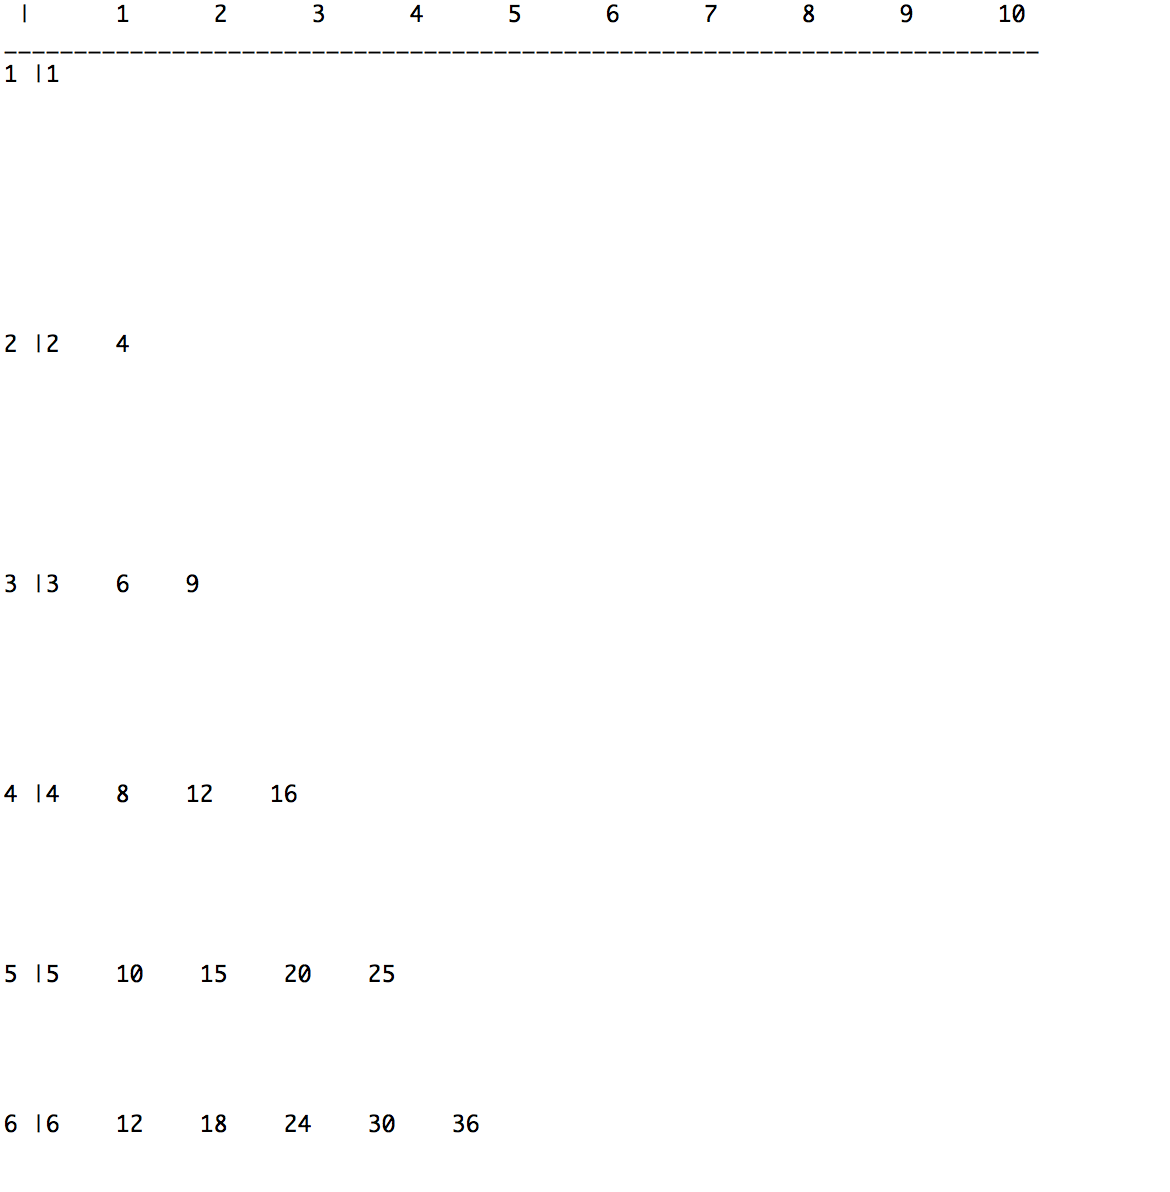 Java-10X15 Multiplication Table (Nested Loops) - Stack Overflow